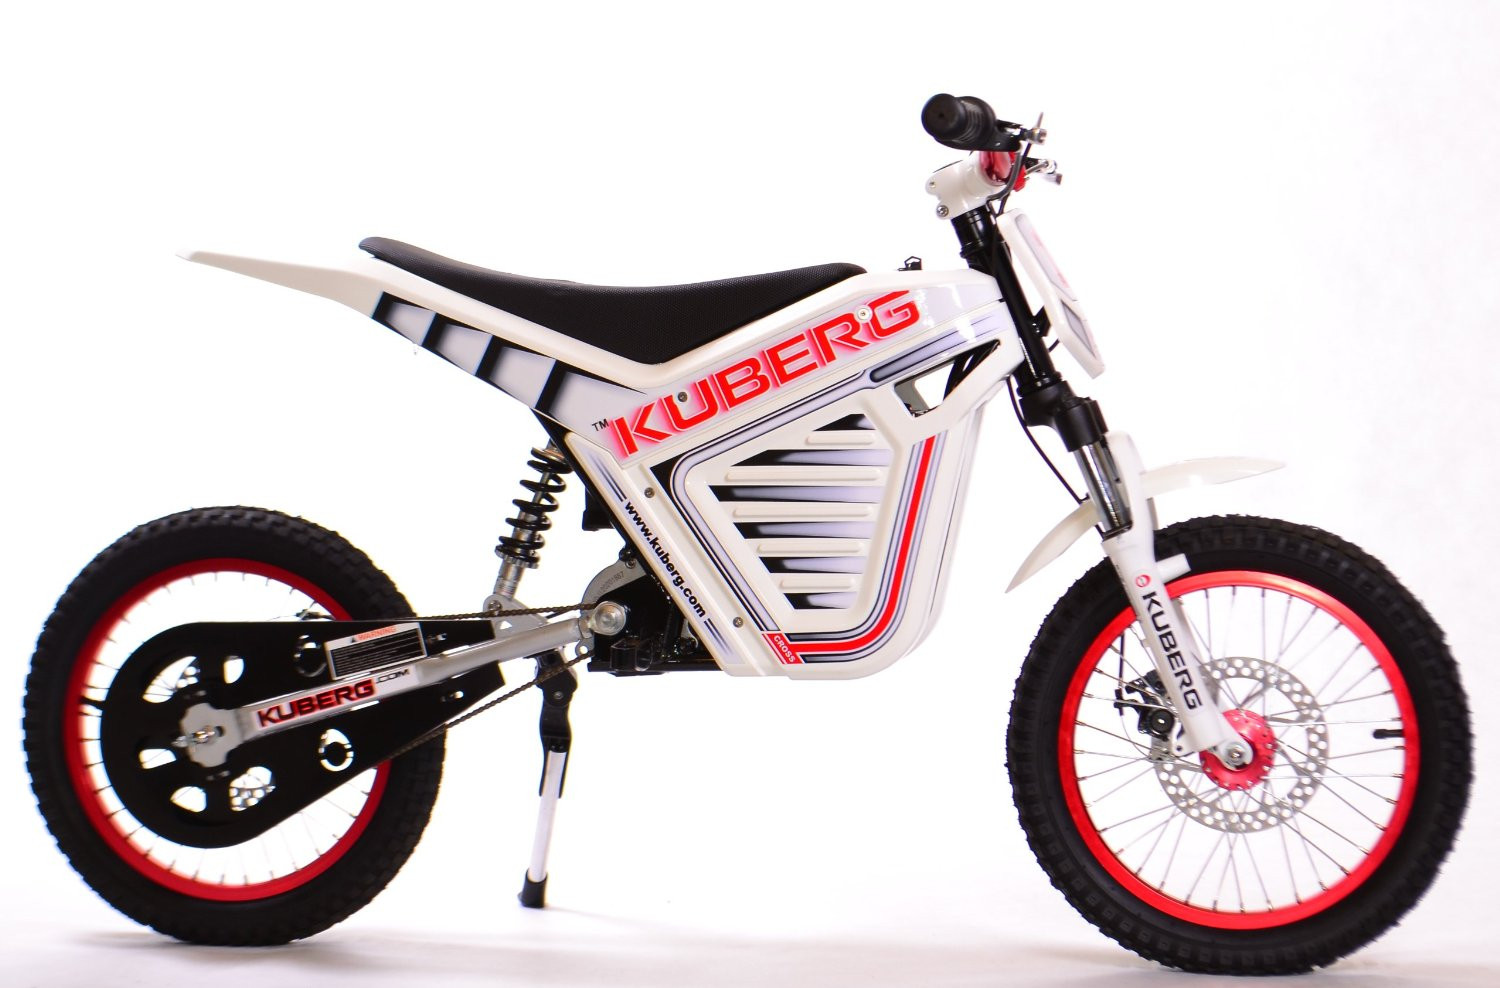 KUBERG CROSS OFF-ROAD ELECTRIC MOTOCROSS BIKE